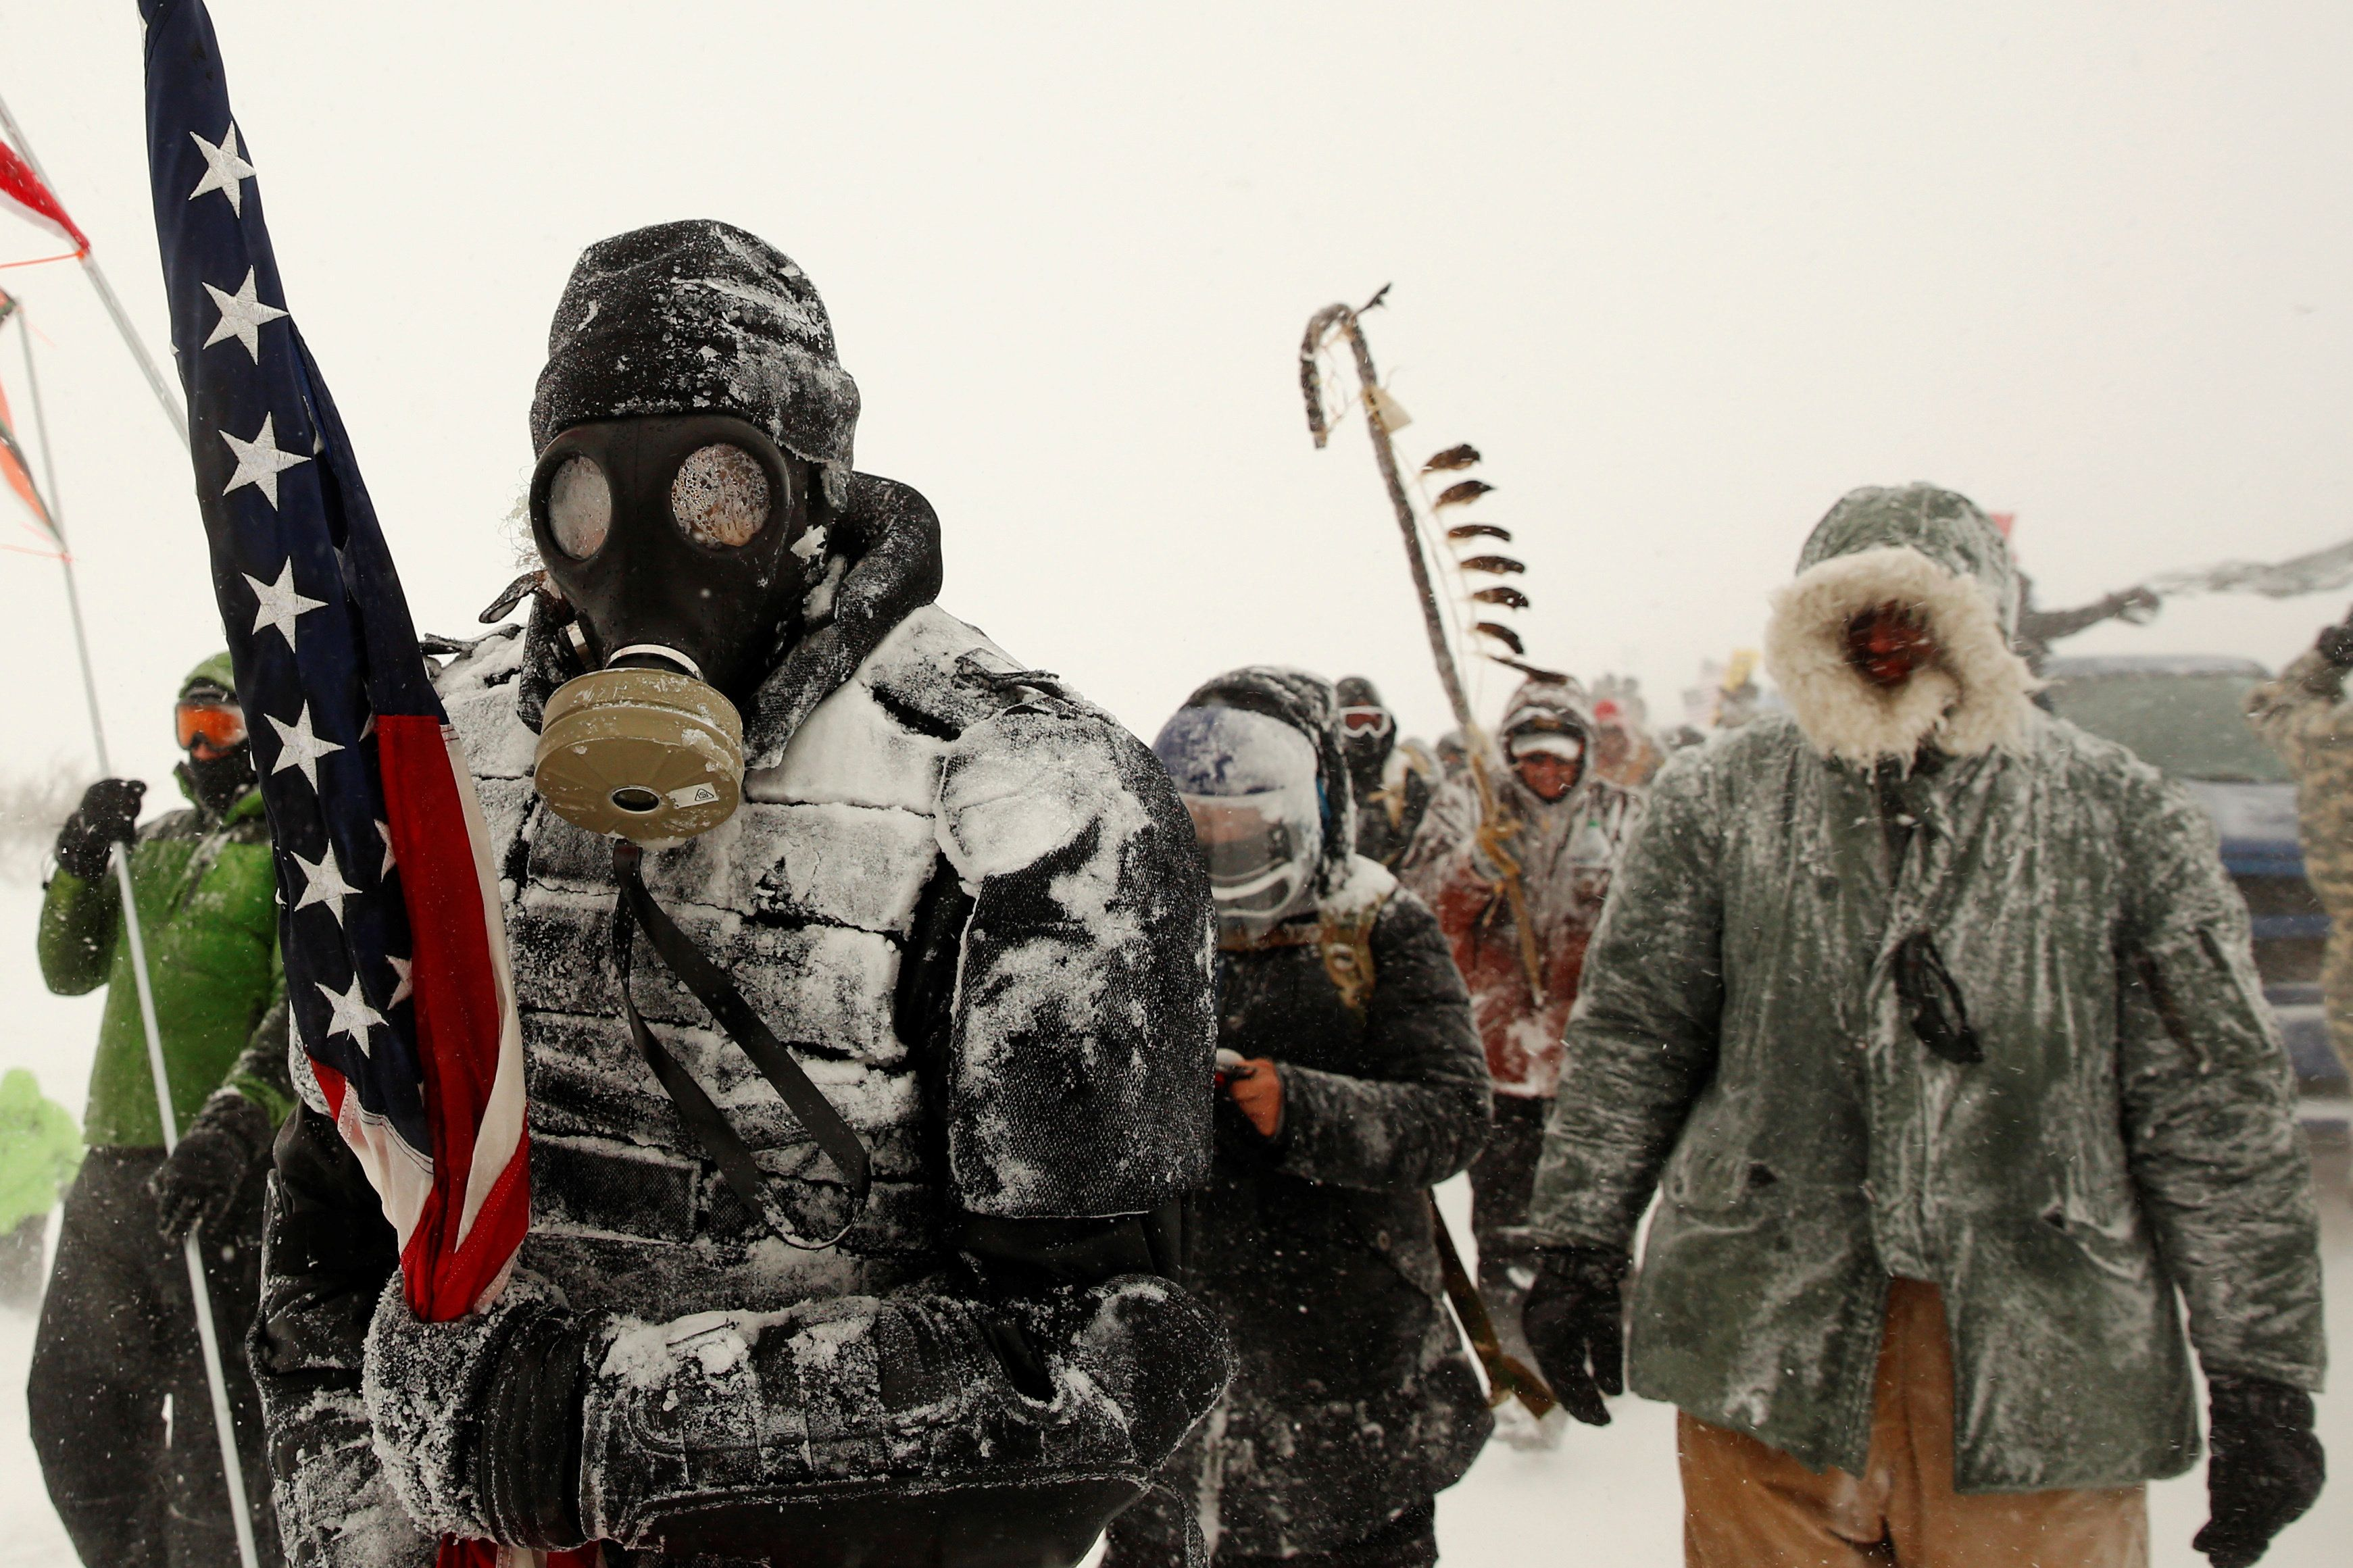 """A man takes part in a march with veterans to Backwater Bridge just outside of the Oceti Sakowin camp during a snow fall as """"water protectors"""" continue to demonstrate against plans to pass the Dakota Access pipeline adjacent to the Standing Rock Indian Reservation, near Cannon Ball, North Dakota, U.S., December 5, 2016.  REUTERS/Lucas Jackson"""